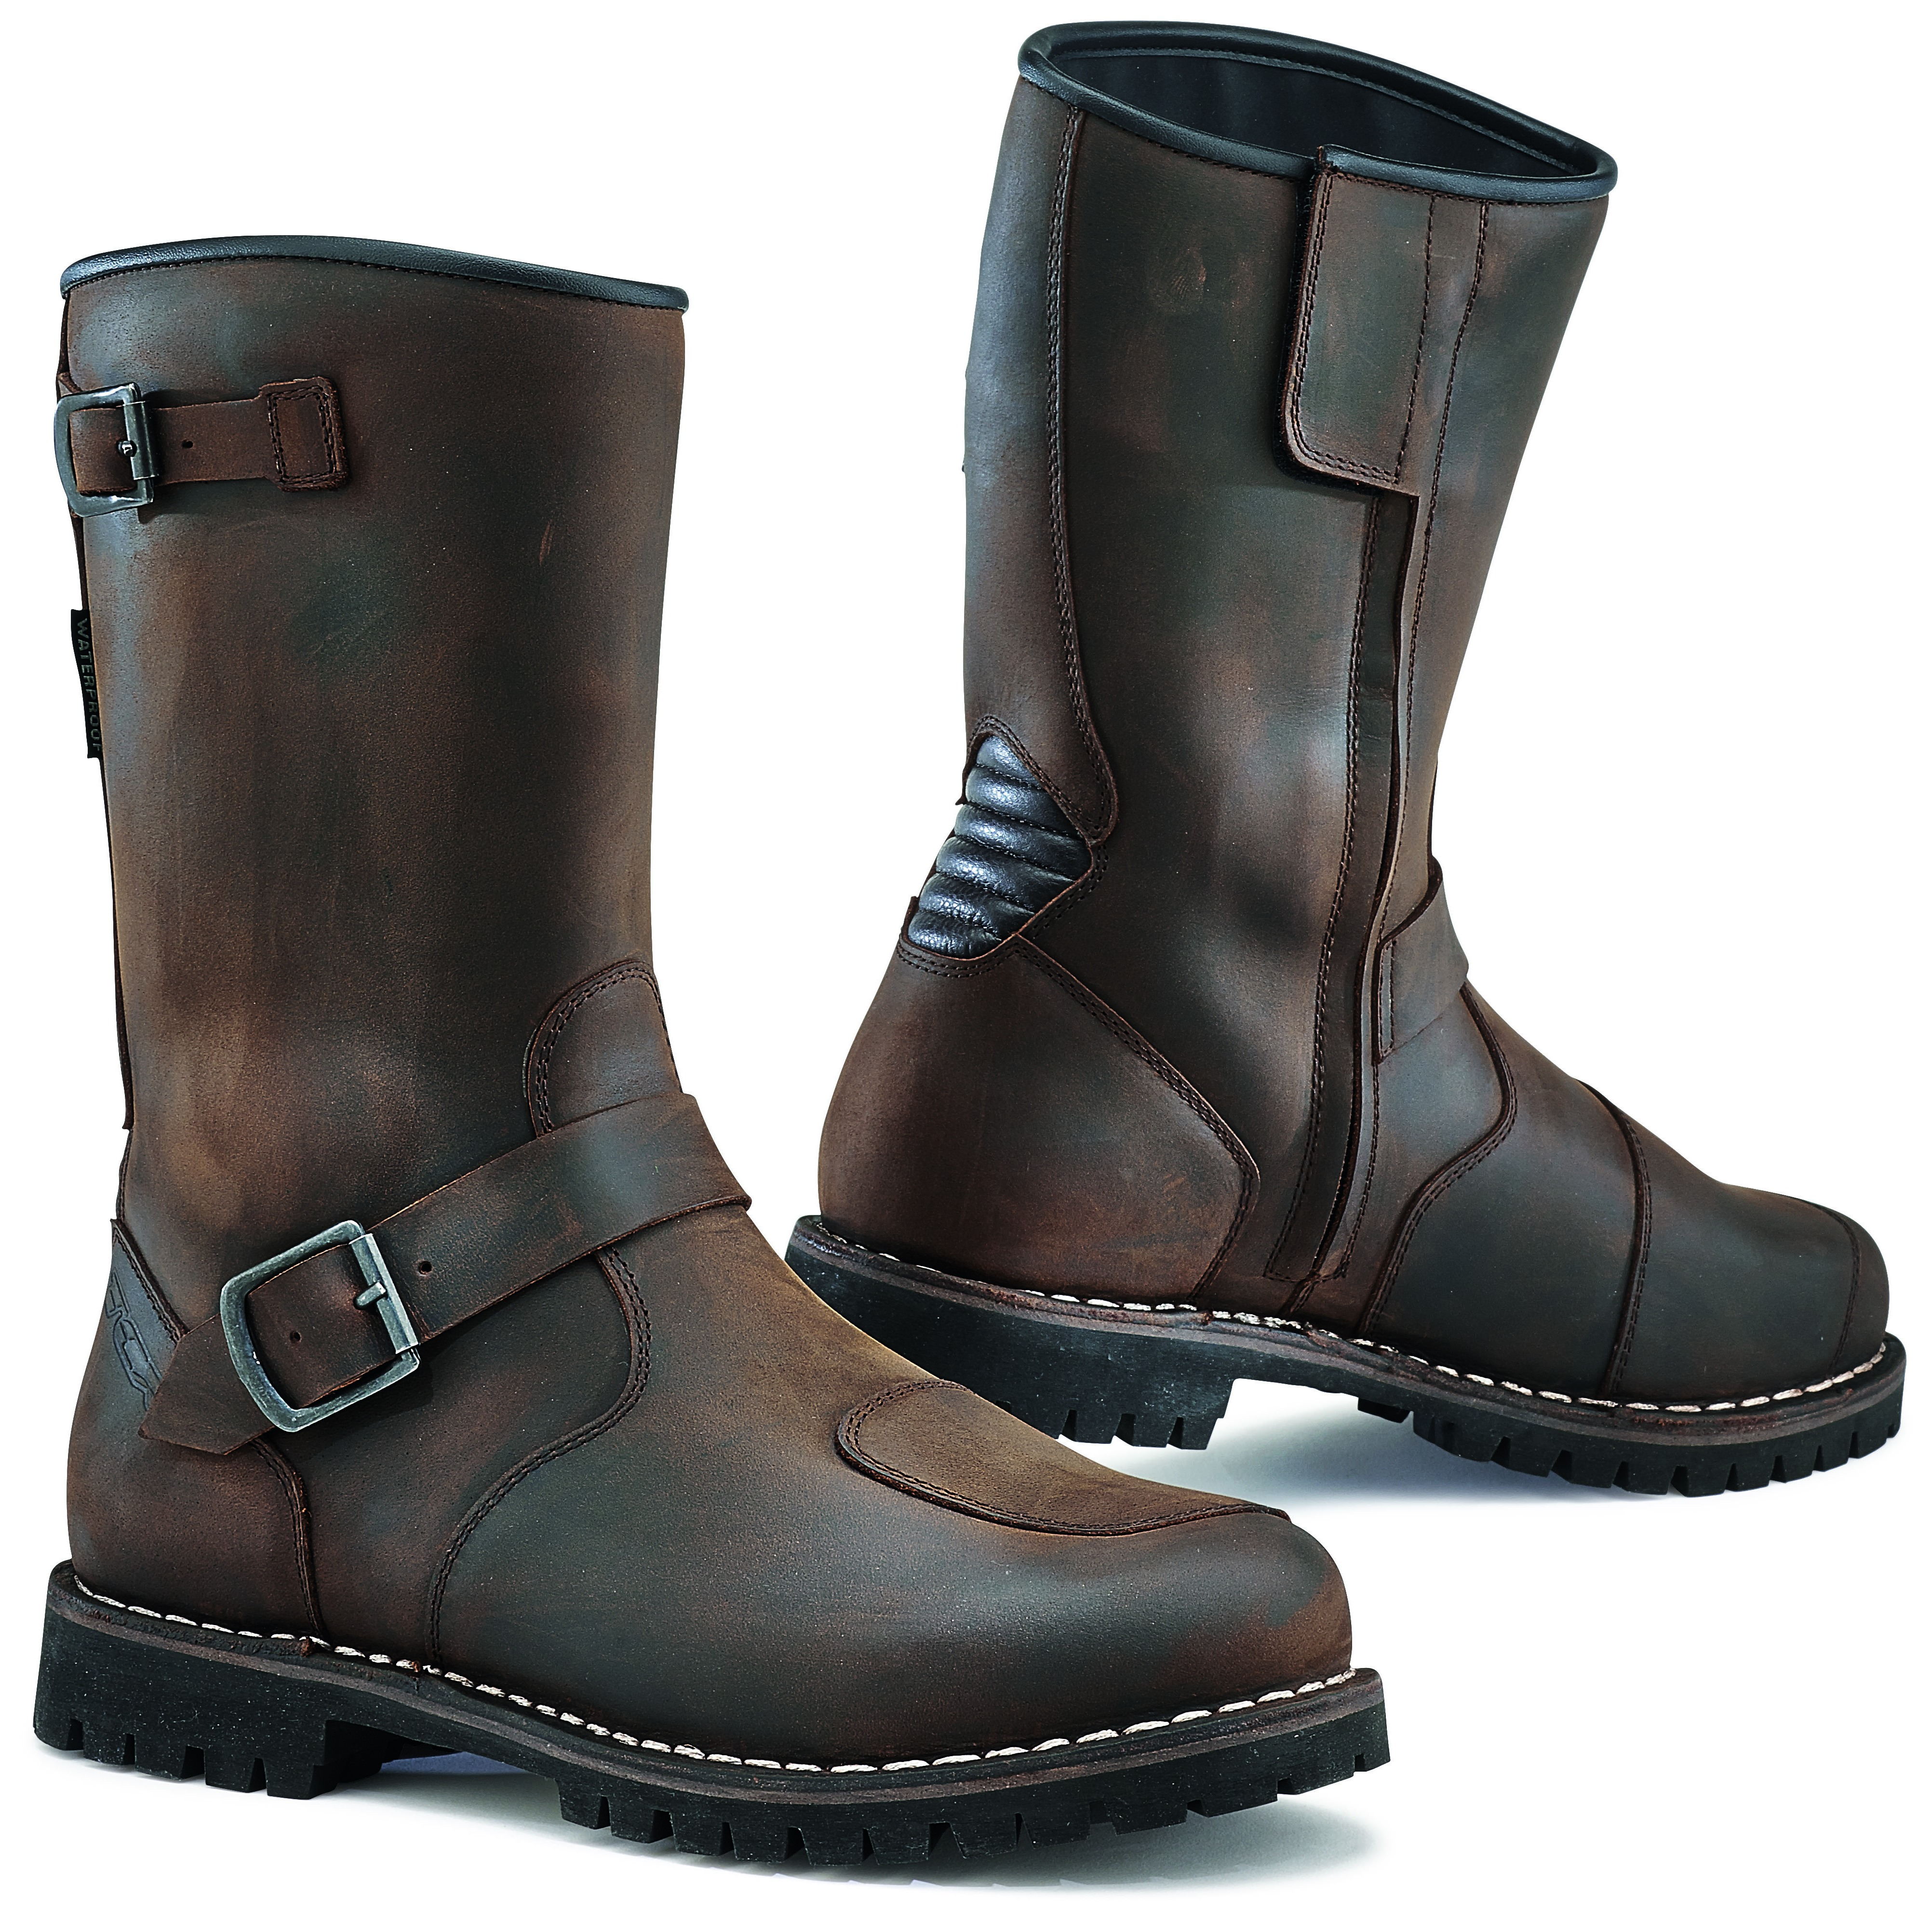 motorcycle riding boots tcx fuel wp boots - cycle gear YFCCWEK